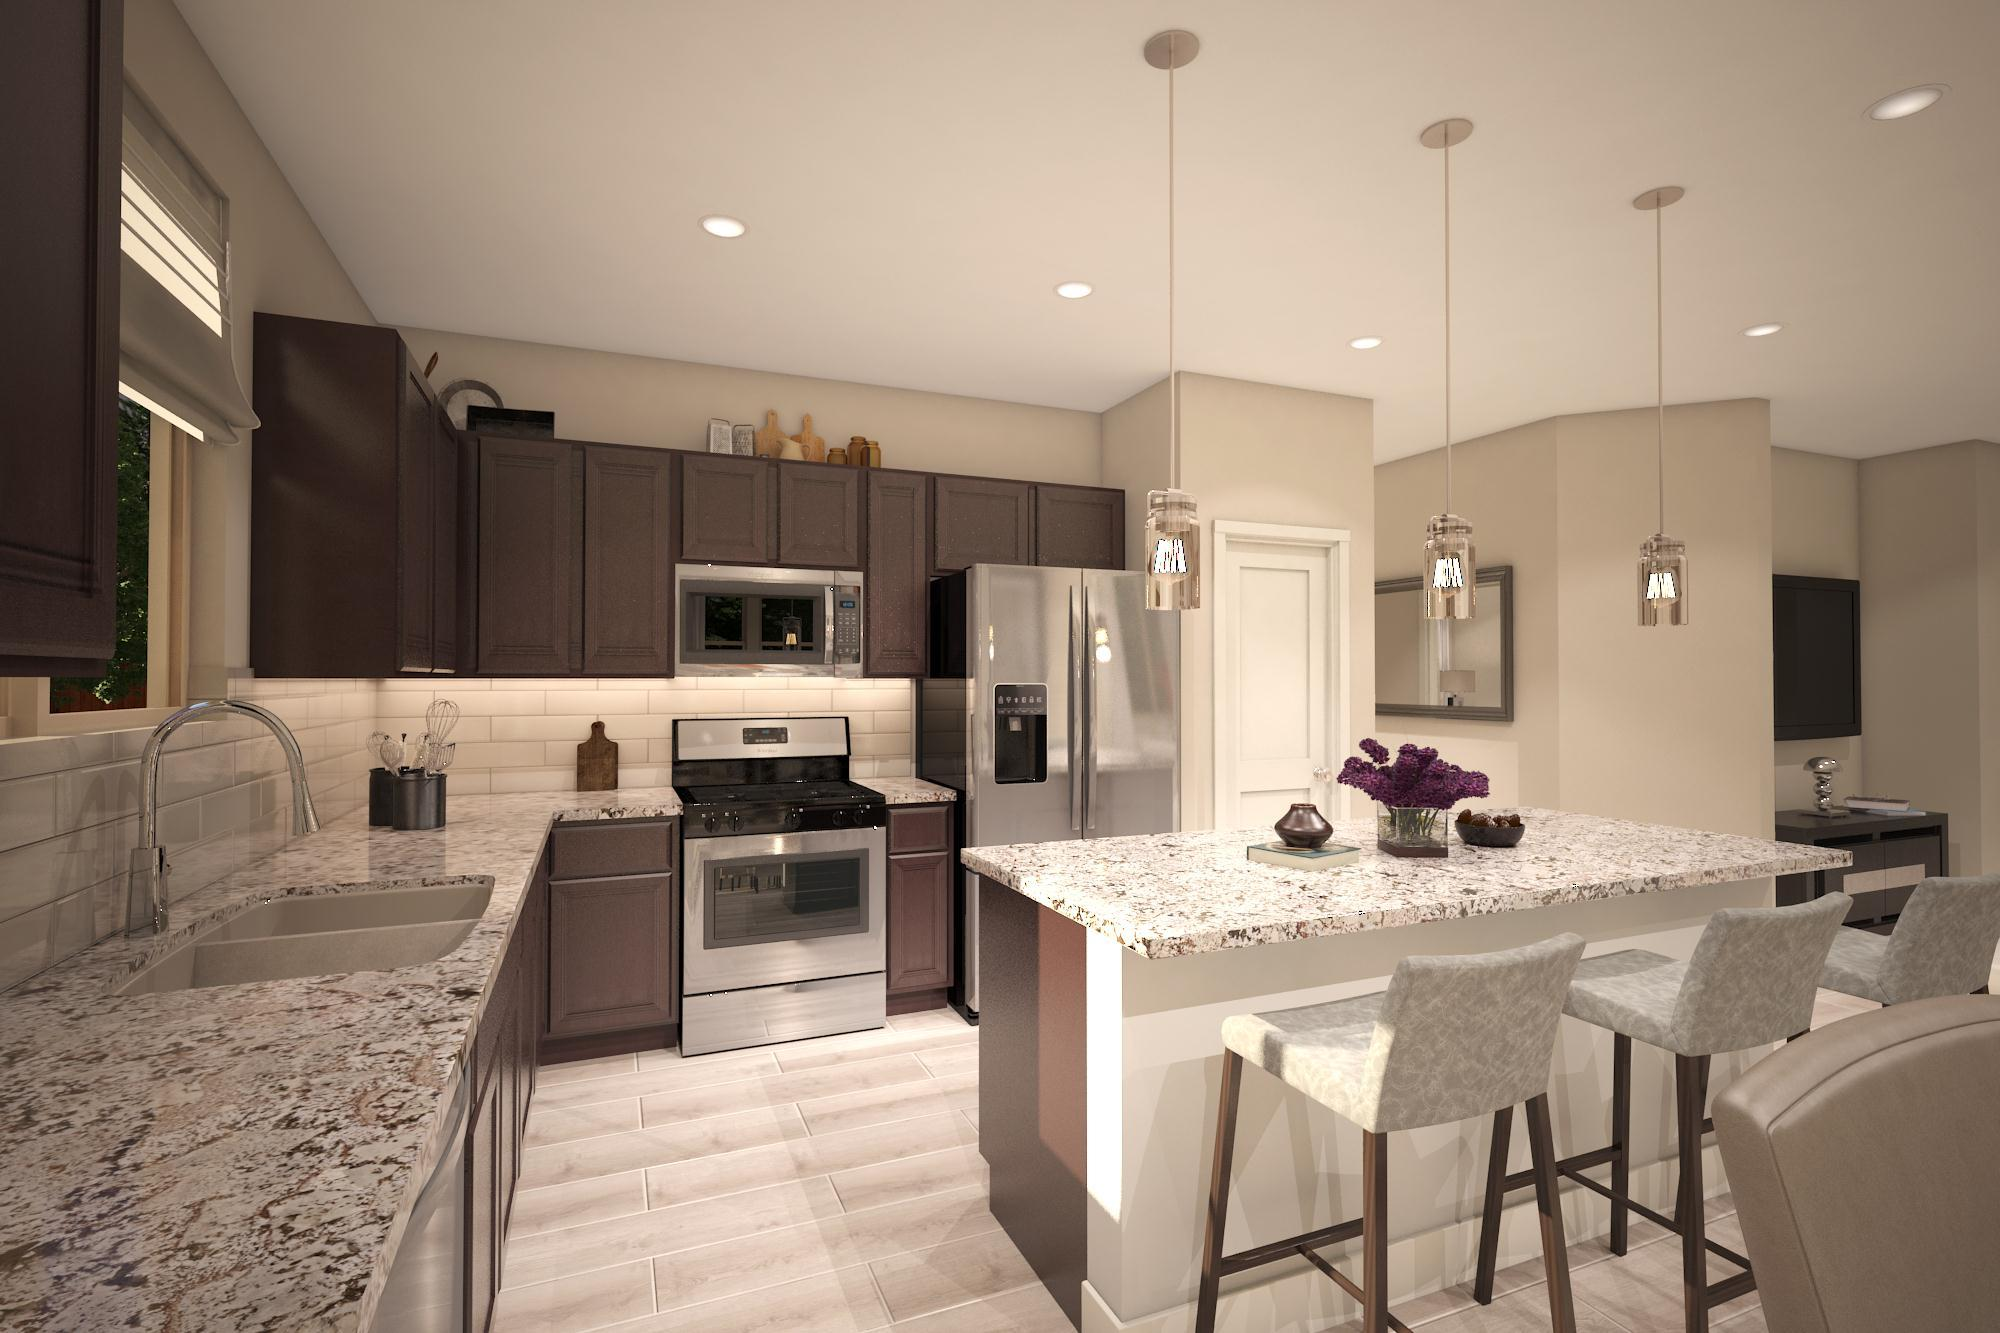 Kitchen featured in the Plan 2- 1574 By Jenuane Communities in Reno, NV